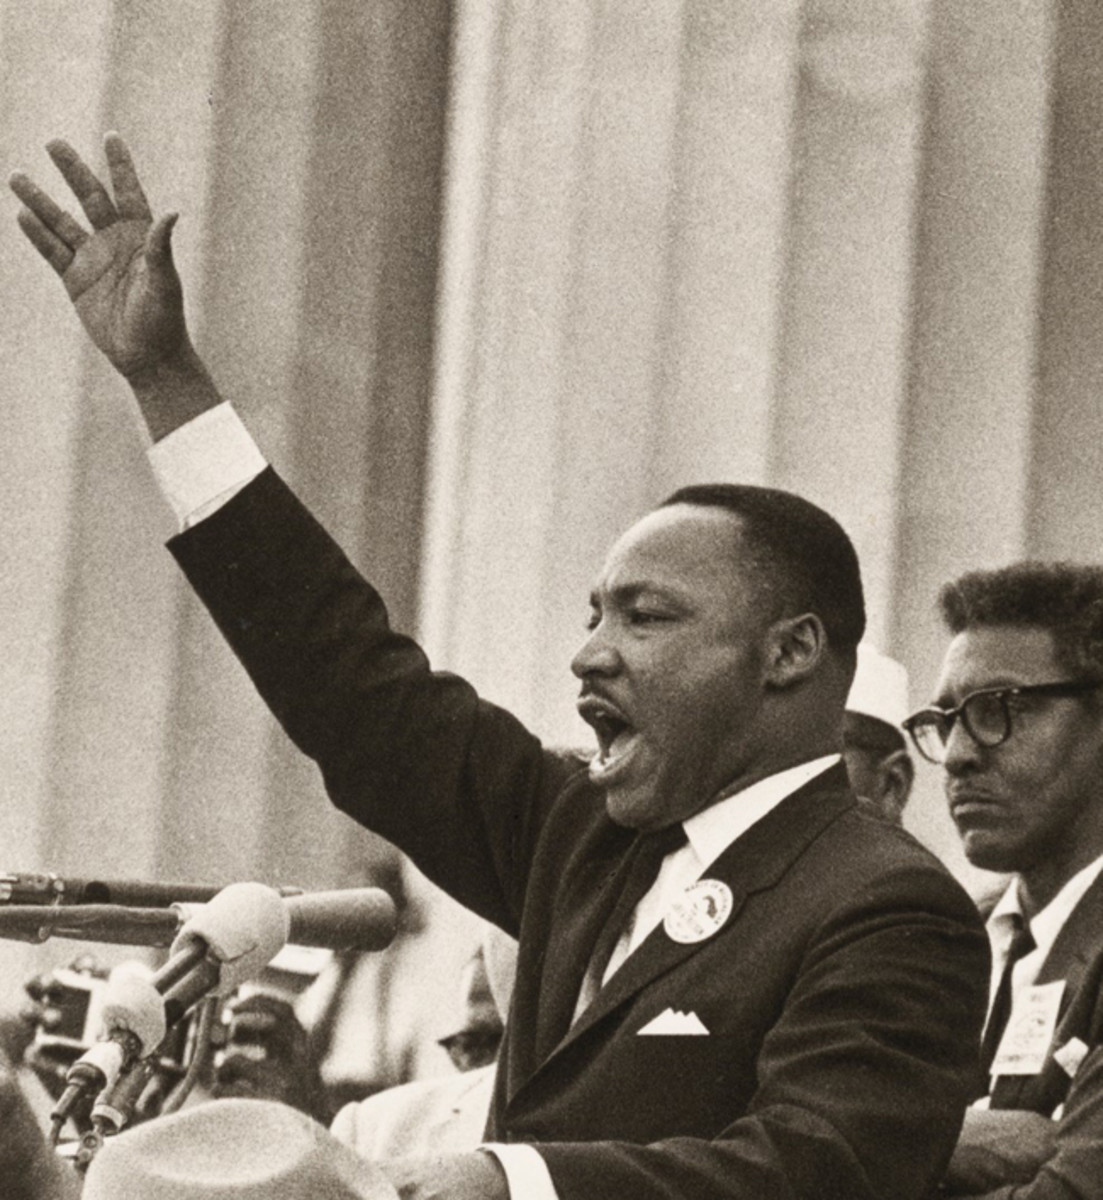 """The Reverend Martin Luther King is seen here giving his famous """"I have a Dream"""" Speech at the Lincoln Memorial, Washington DC in 1963. King became the most active and visible leader of the Civil Rights movement until his assassination in April 1968. Local author, Tony Ettwein, will take a close look at 1968 and '69, two of the most tumultuous years in history, during his January 13 presentation. Photo: Smithsonian Institution / B. Adelman"""